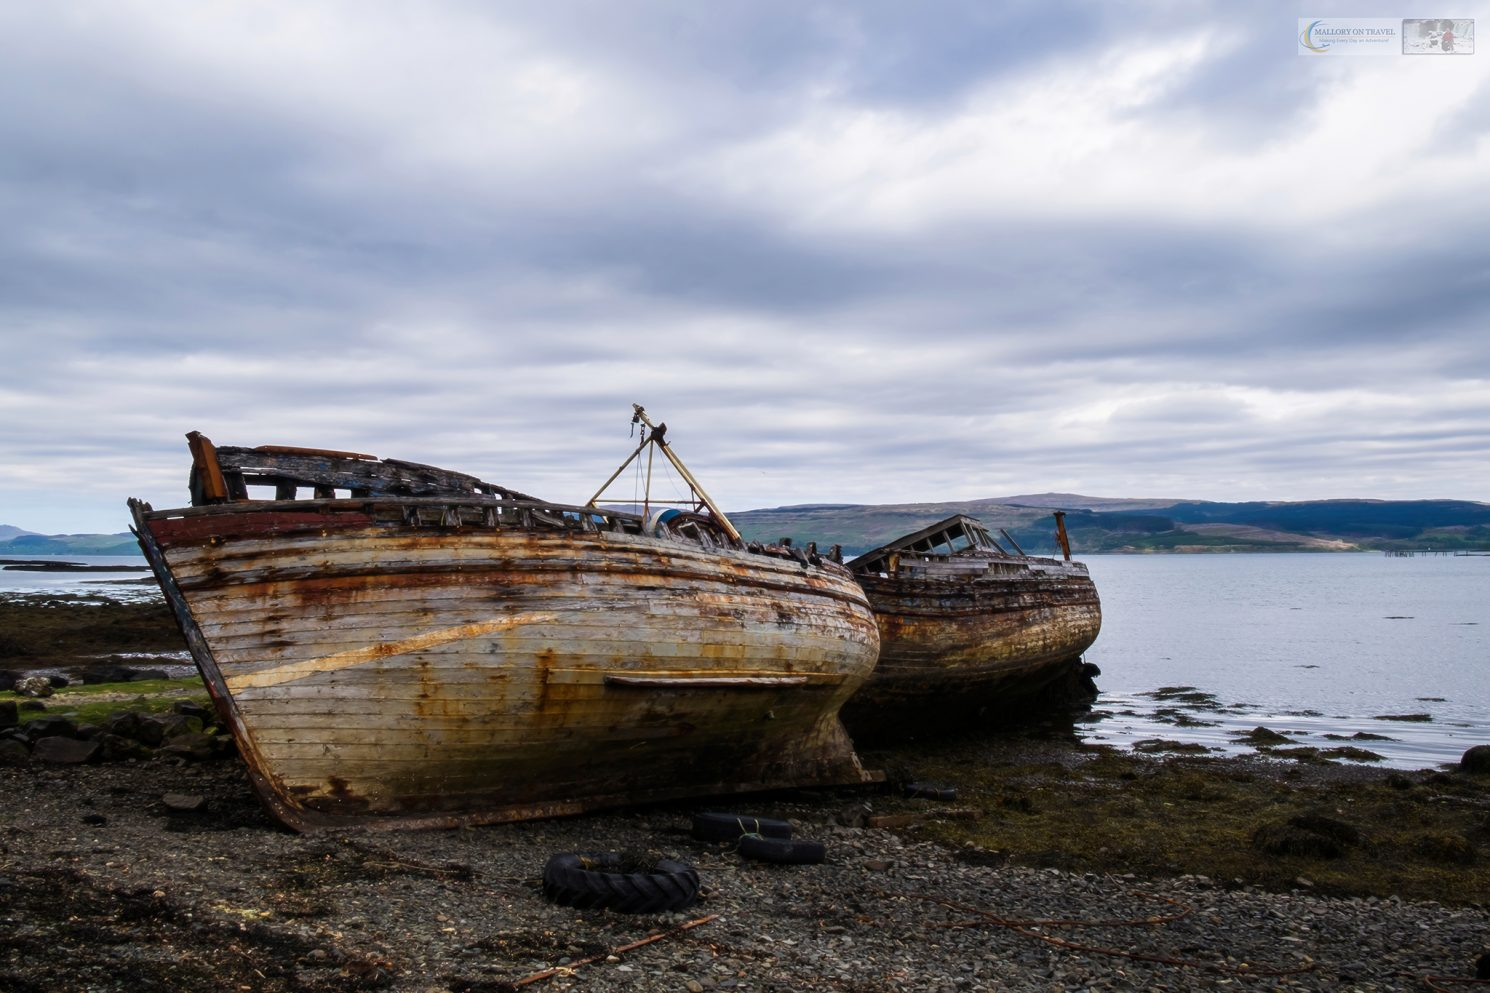 Visual storytelling; Old deserted fishing boats in the Sound of Mull near Salen, Isle of Mull on the west coast of Scotland on Mallory on Travel adventure travel, photography, travel Iain Mallory_Scotland 002